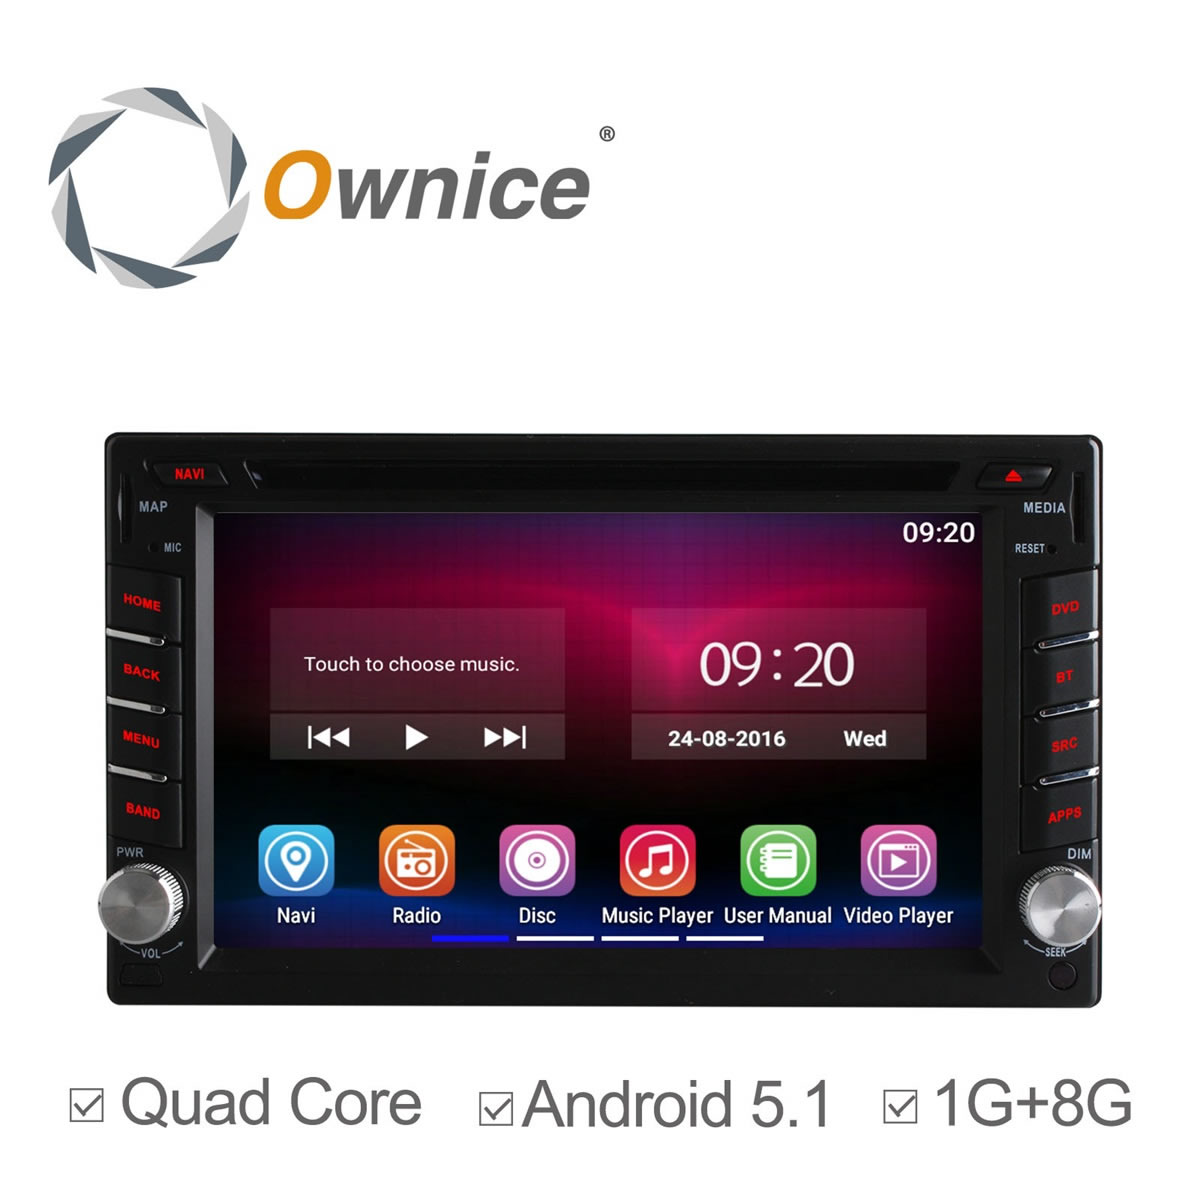 Quad Core Android 5.1 Car Radio Double Din Capacitive Touch Screen Full HD 1080P Stereo DVD Player GPS Navigation System  -  Esson Technology store